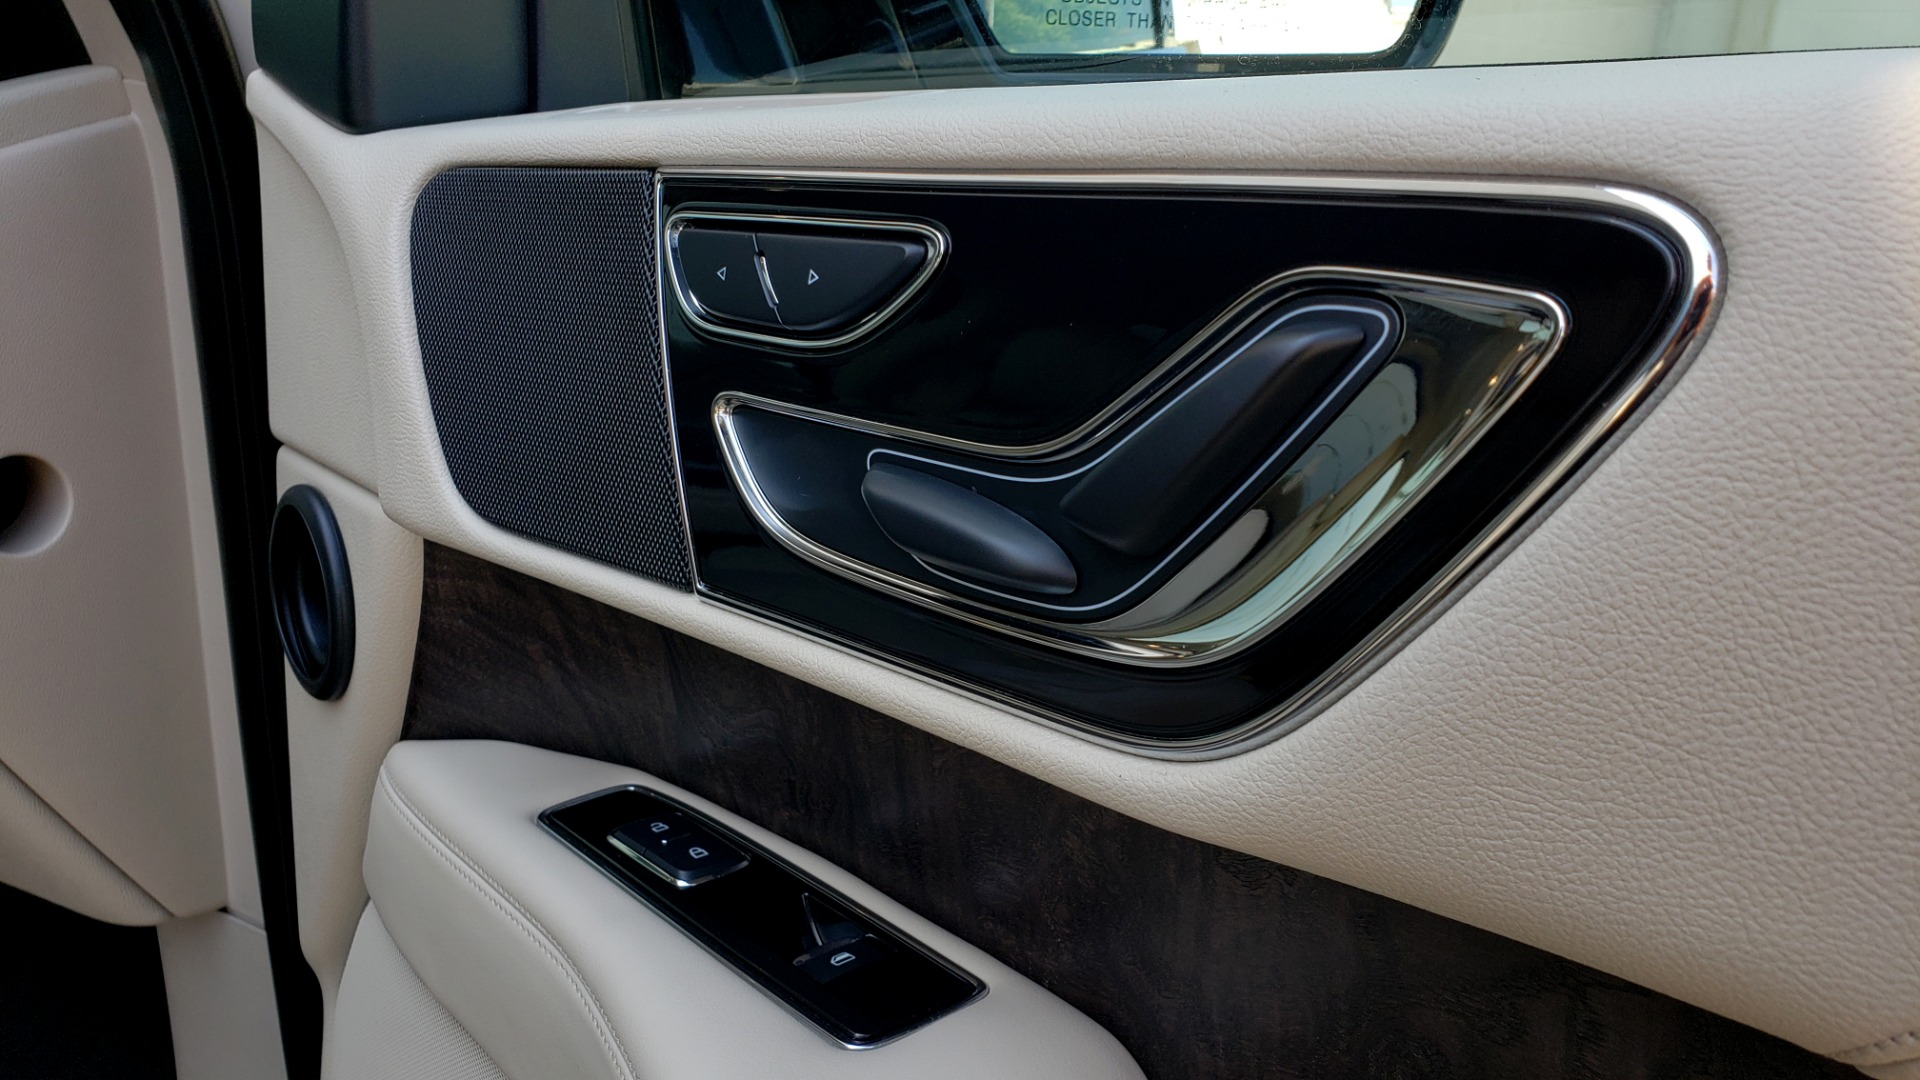 Used 2018 Lincoln NAVIGATOR PREMIERE 4X2 / TWIN-TURBO V6 / NAV / 3-ROW / REARVIEW for sale Sold at Formula Imports in Charlotte NC 28227 77